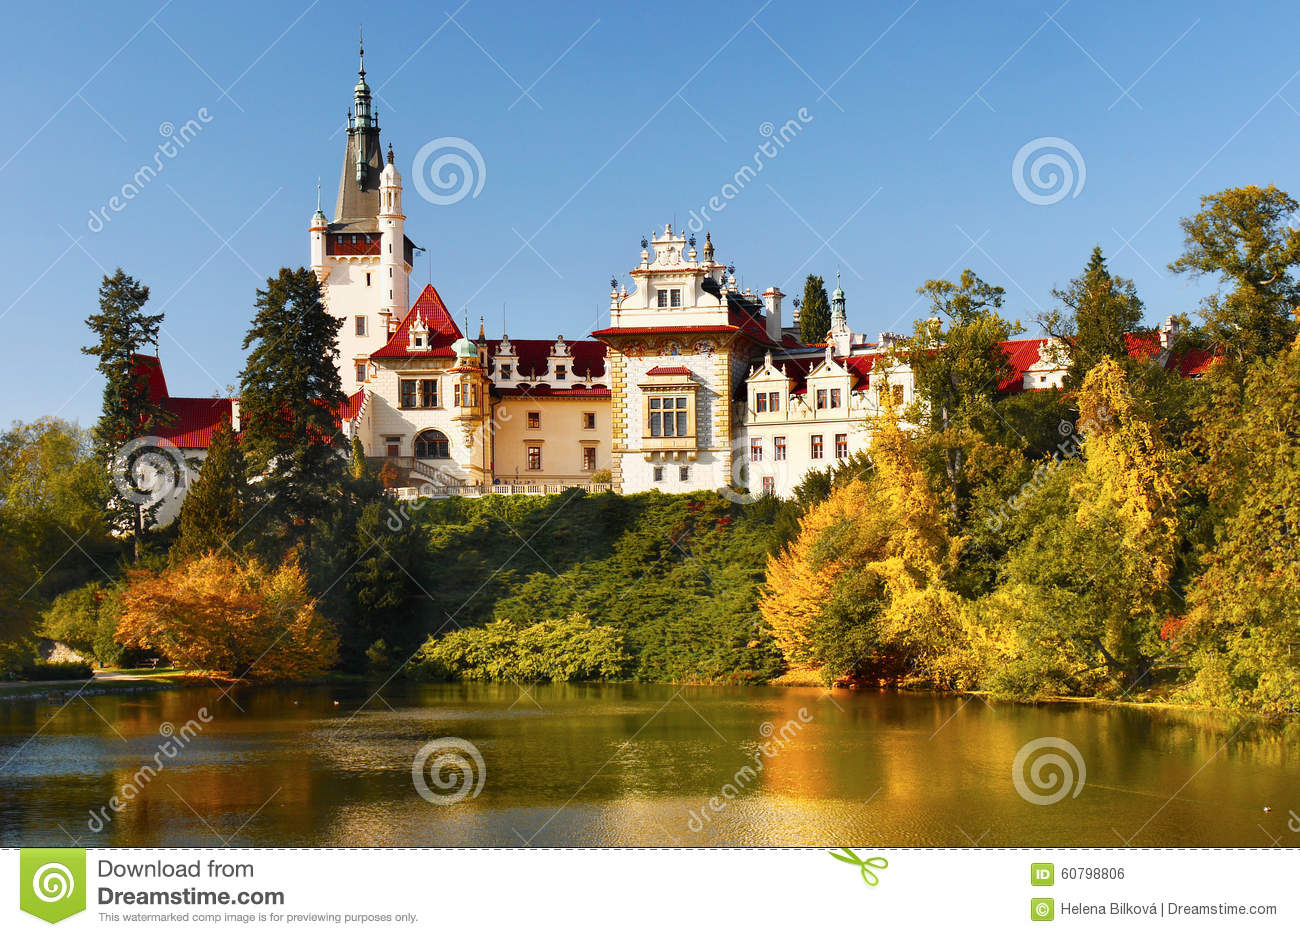 Castle pruhonice prague landmark bohemia stock photo for Where is prague near